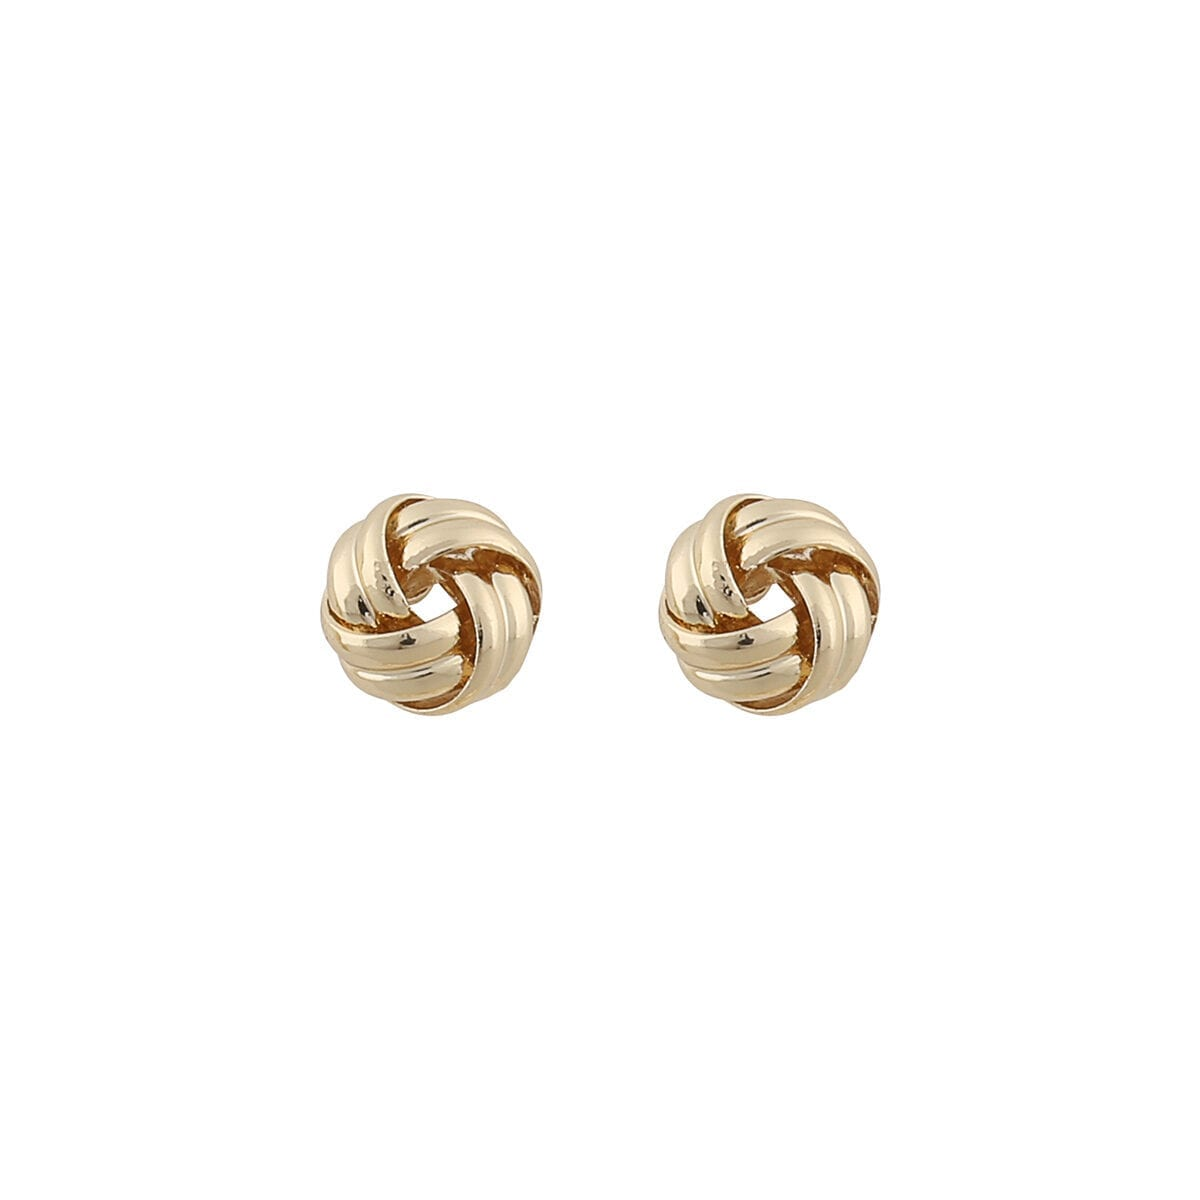 1005-5702257-Claire-knot-small-ear-plain-g